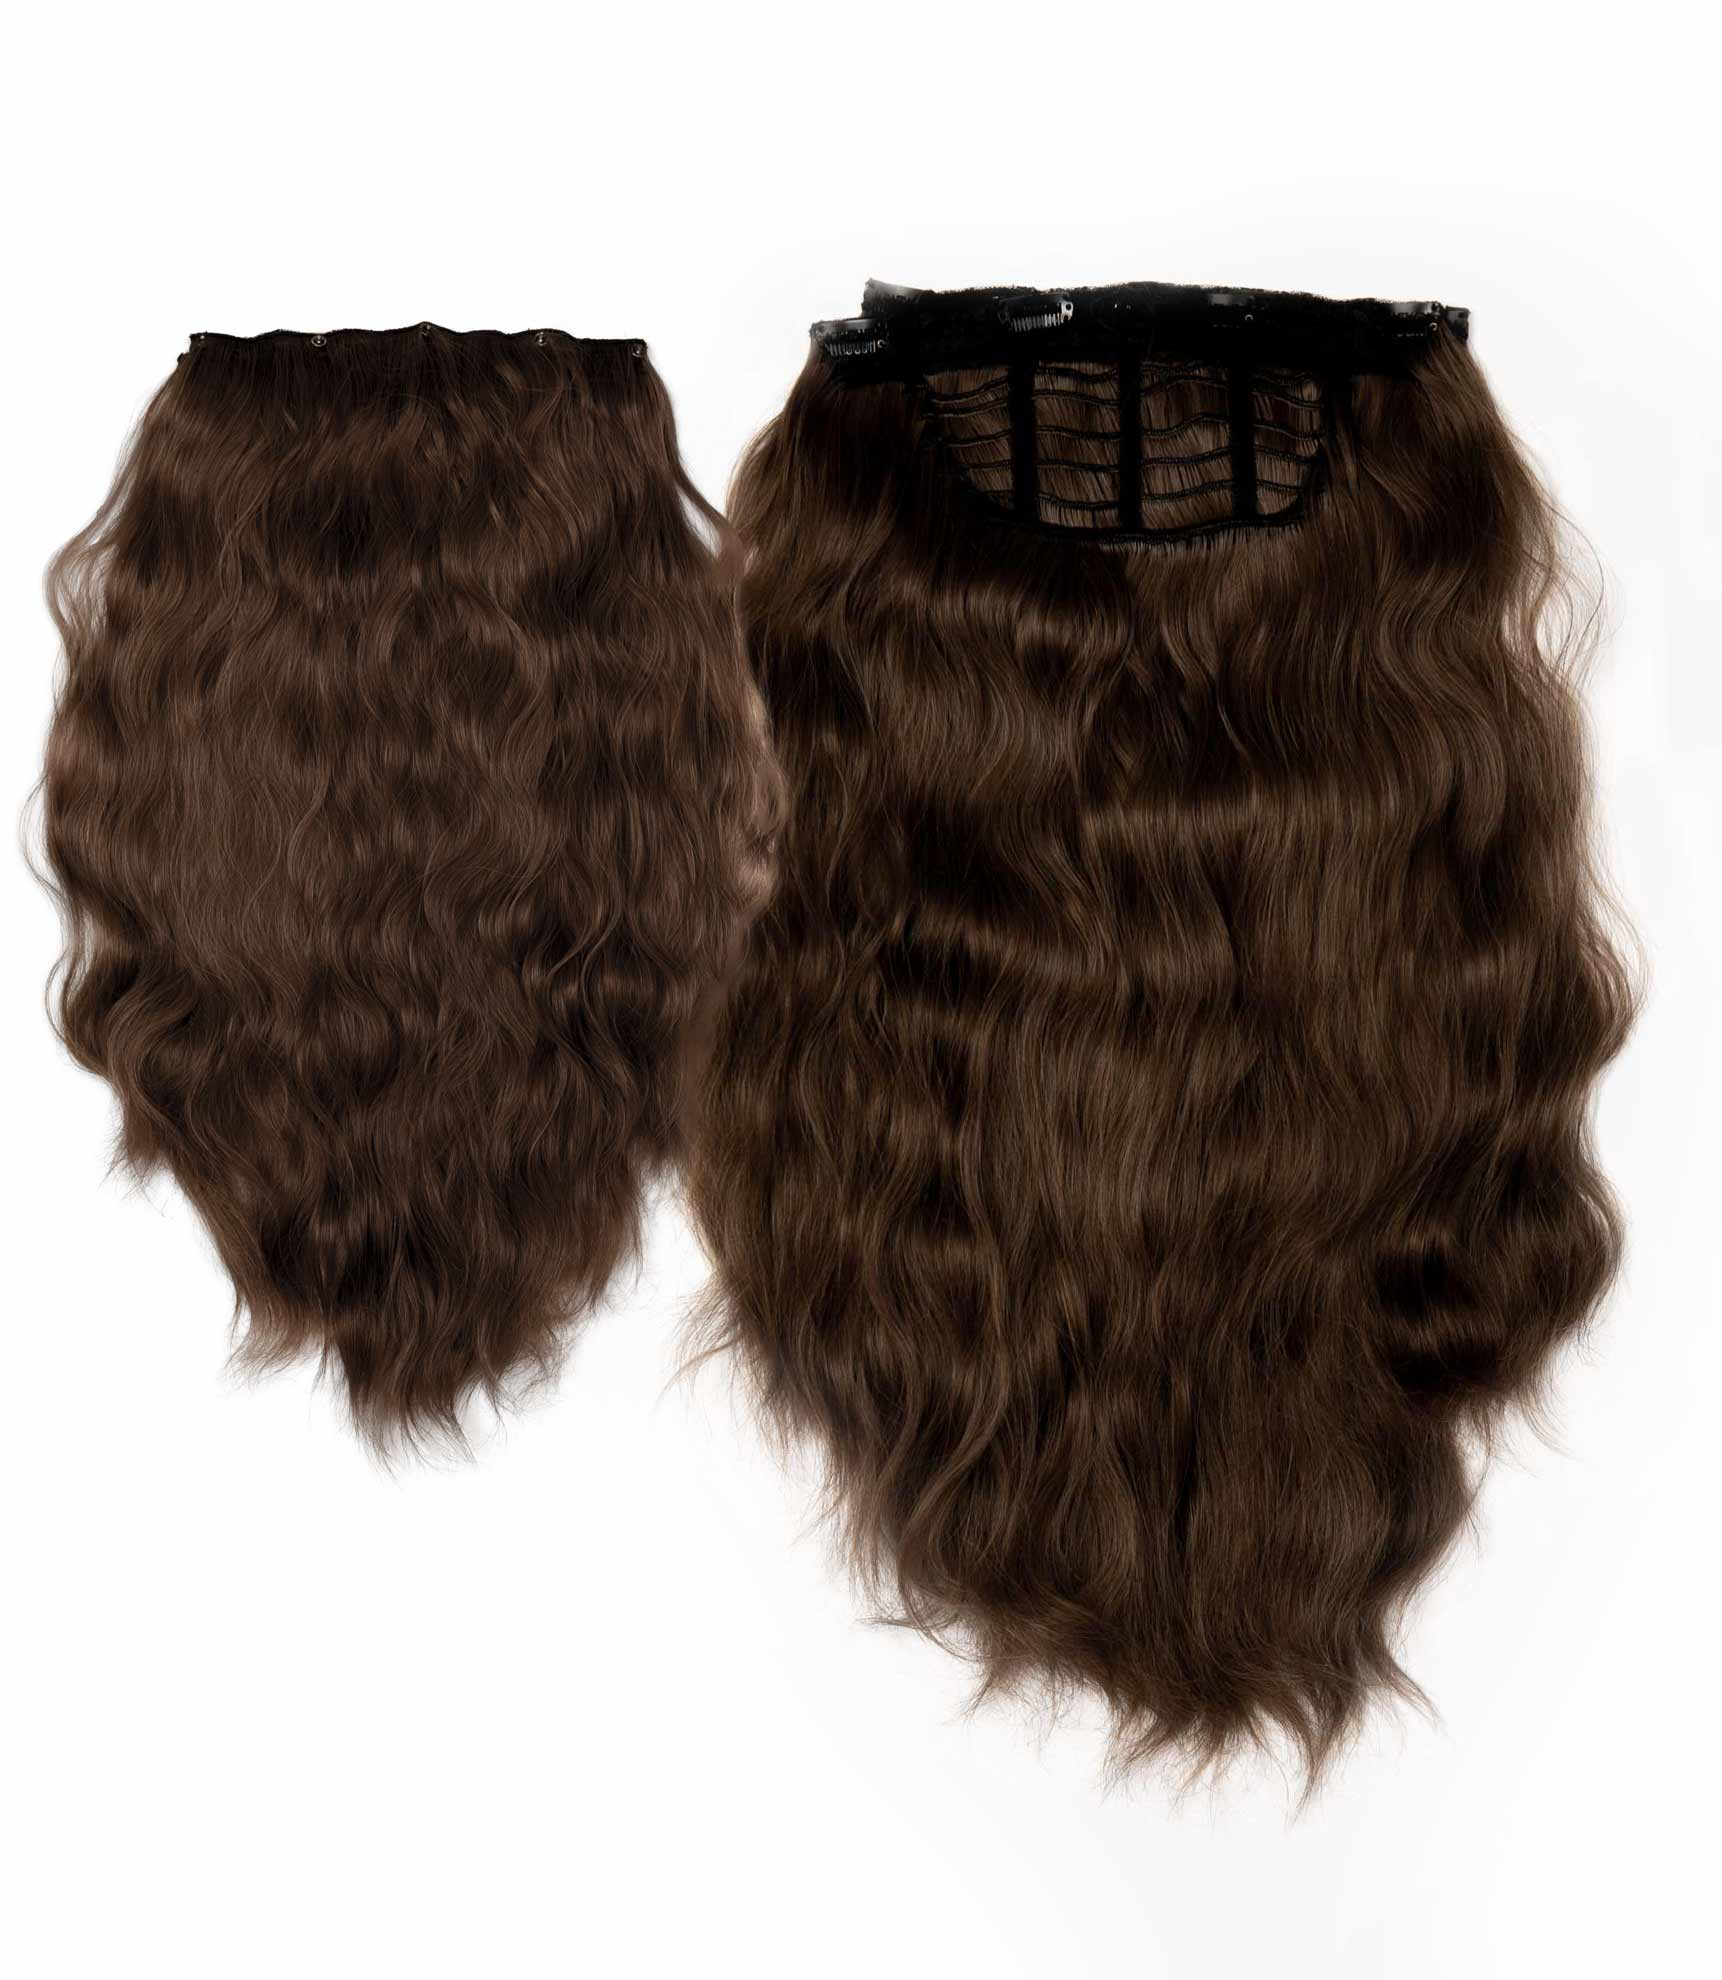 "Charlotte's Miracle Makeover HD Fibre Hair Extensions - 14"" / 22"" - Medium Brown (PRE ORDER) (1319143768144)"